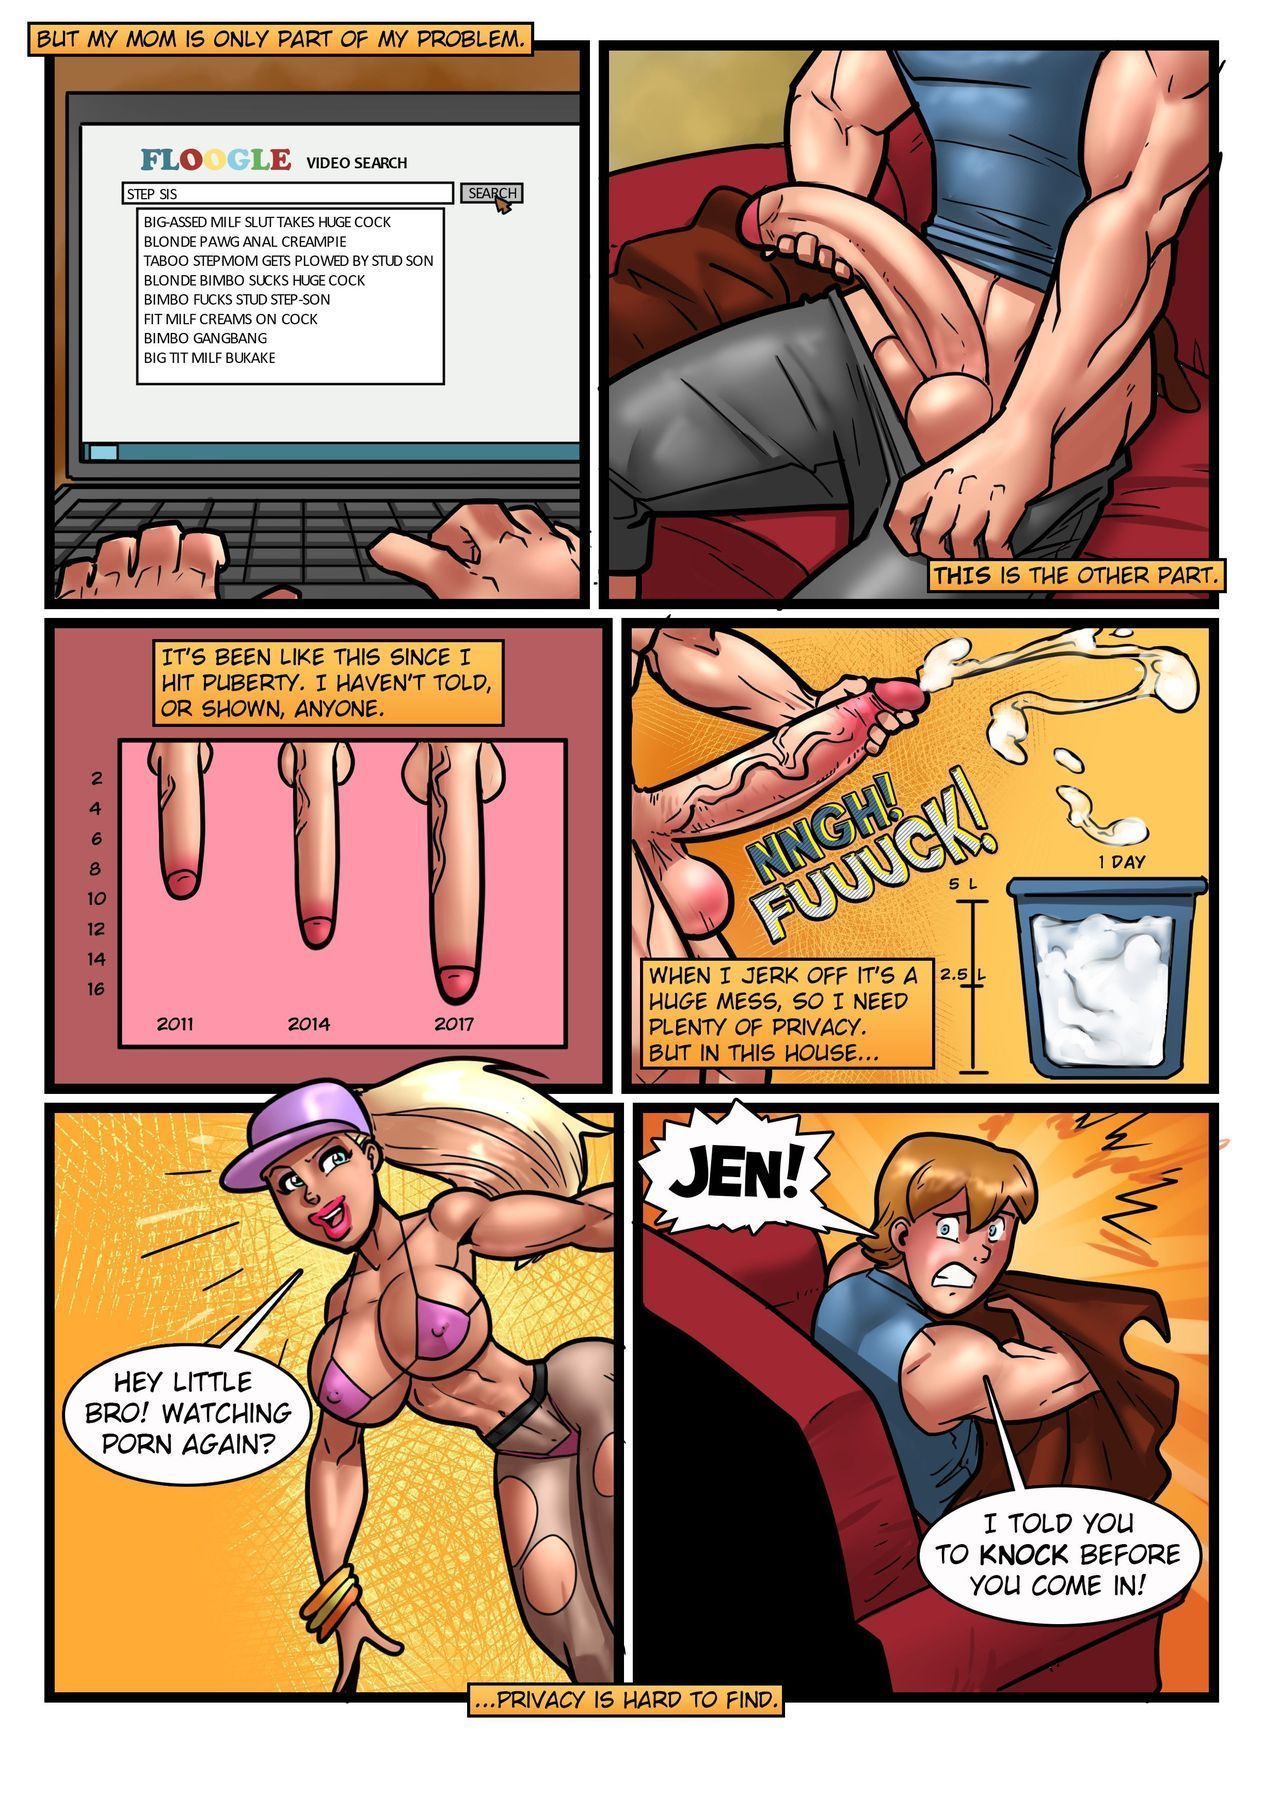 Cartoon Mom Anal Creampie - Big Ass White Cartoon Comics Slut Gets Ready » Whipped Ass ...